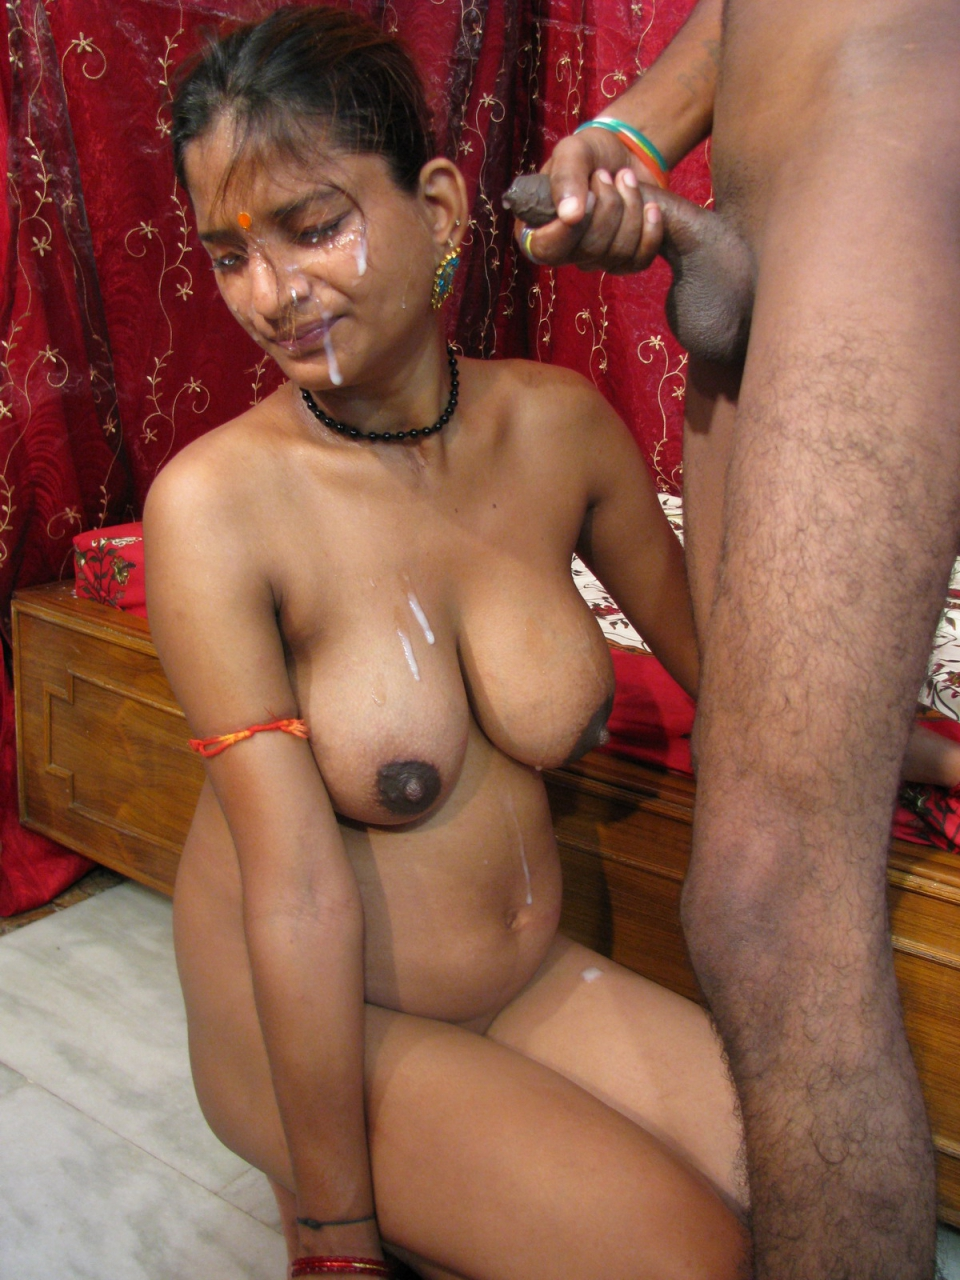 coalies-fucked-indian-bitch-nude-naked-sister